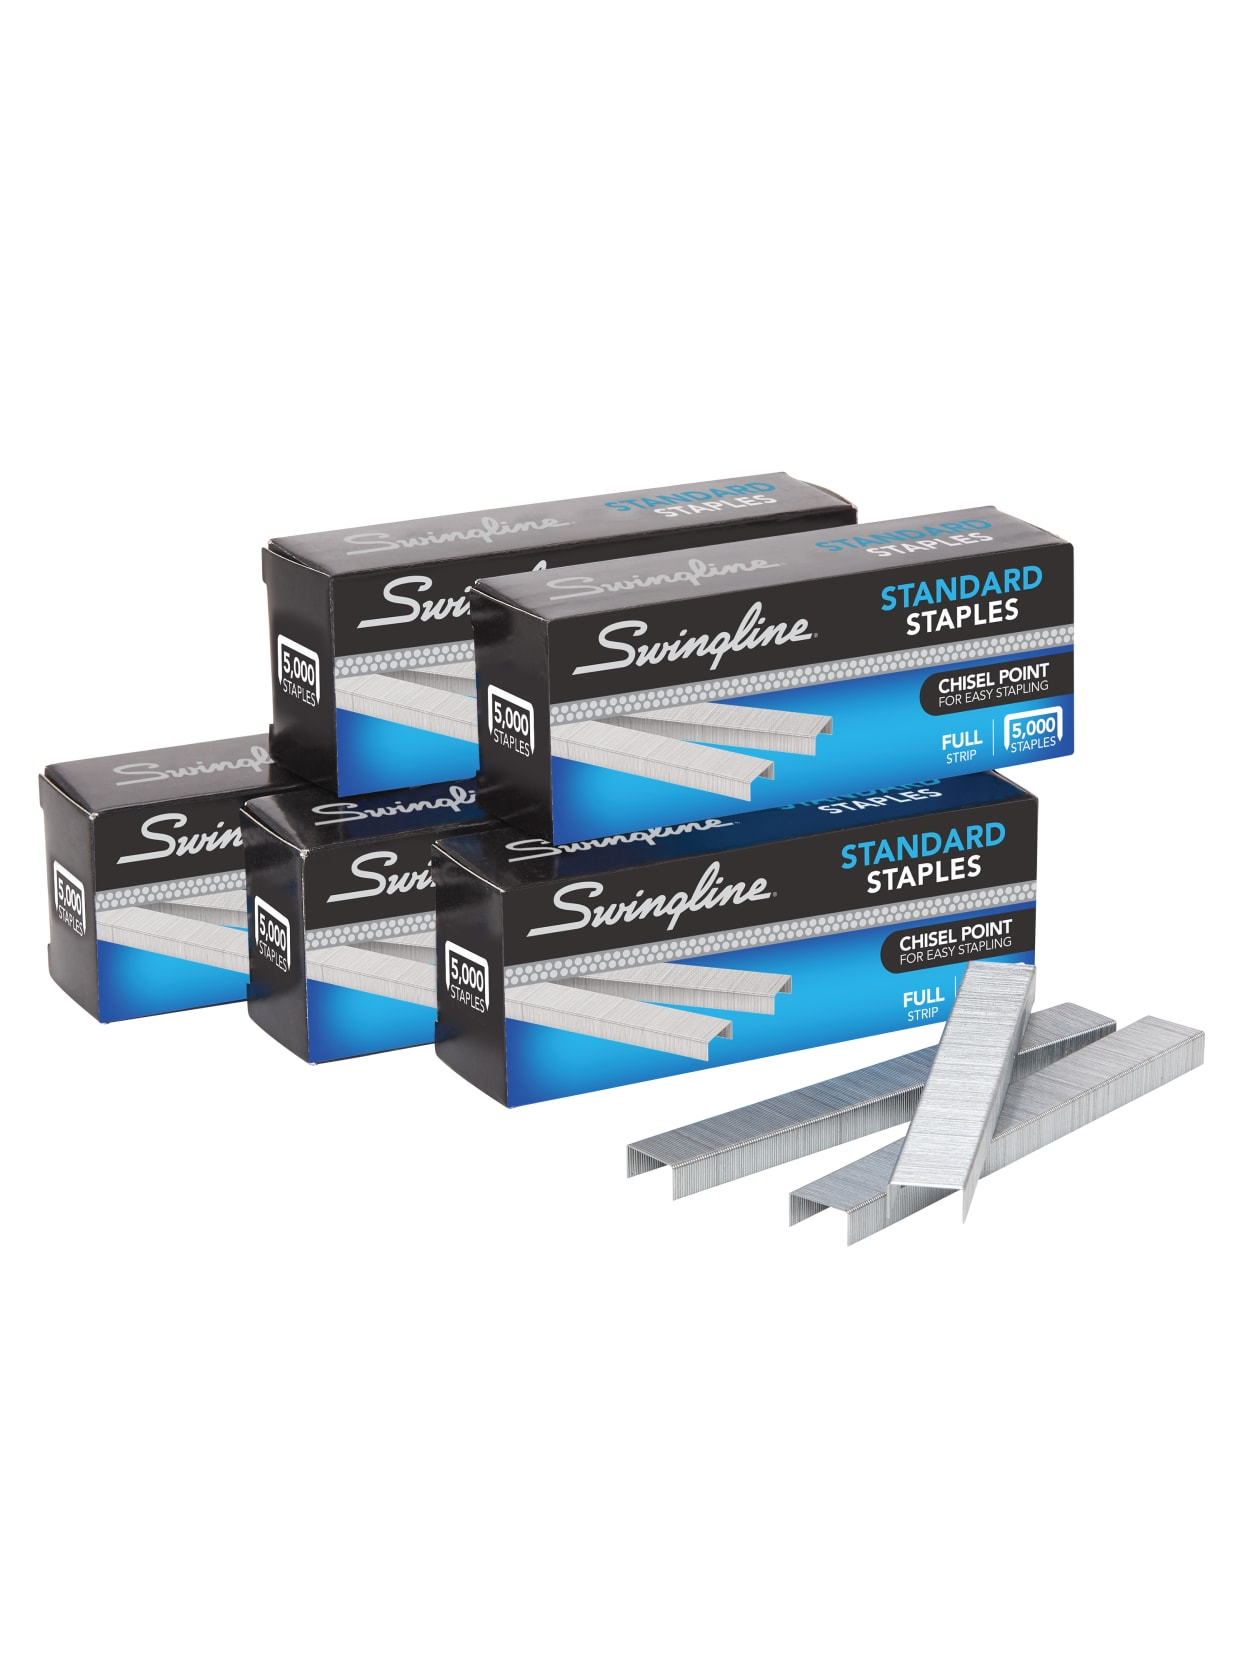 """Swingline Standard Staples 1//4/"""" 5000 per box For Use with Standard Staplers"""